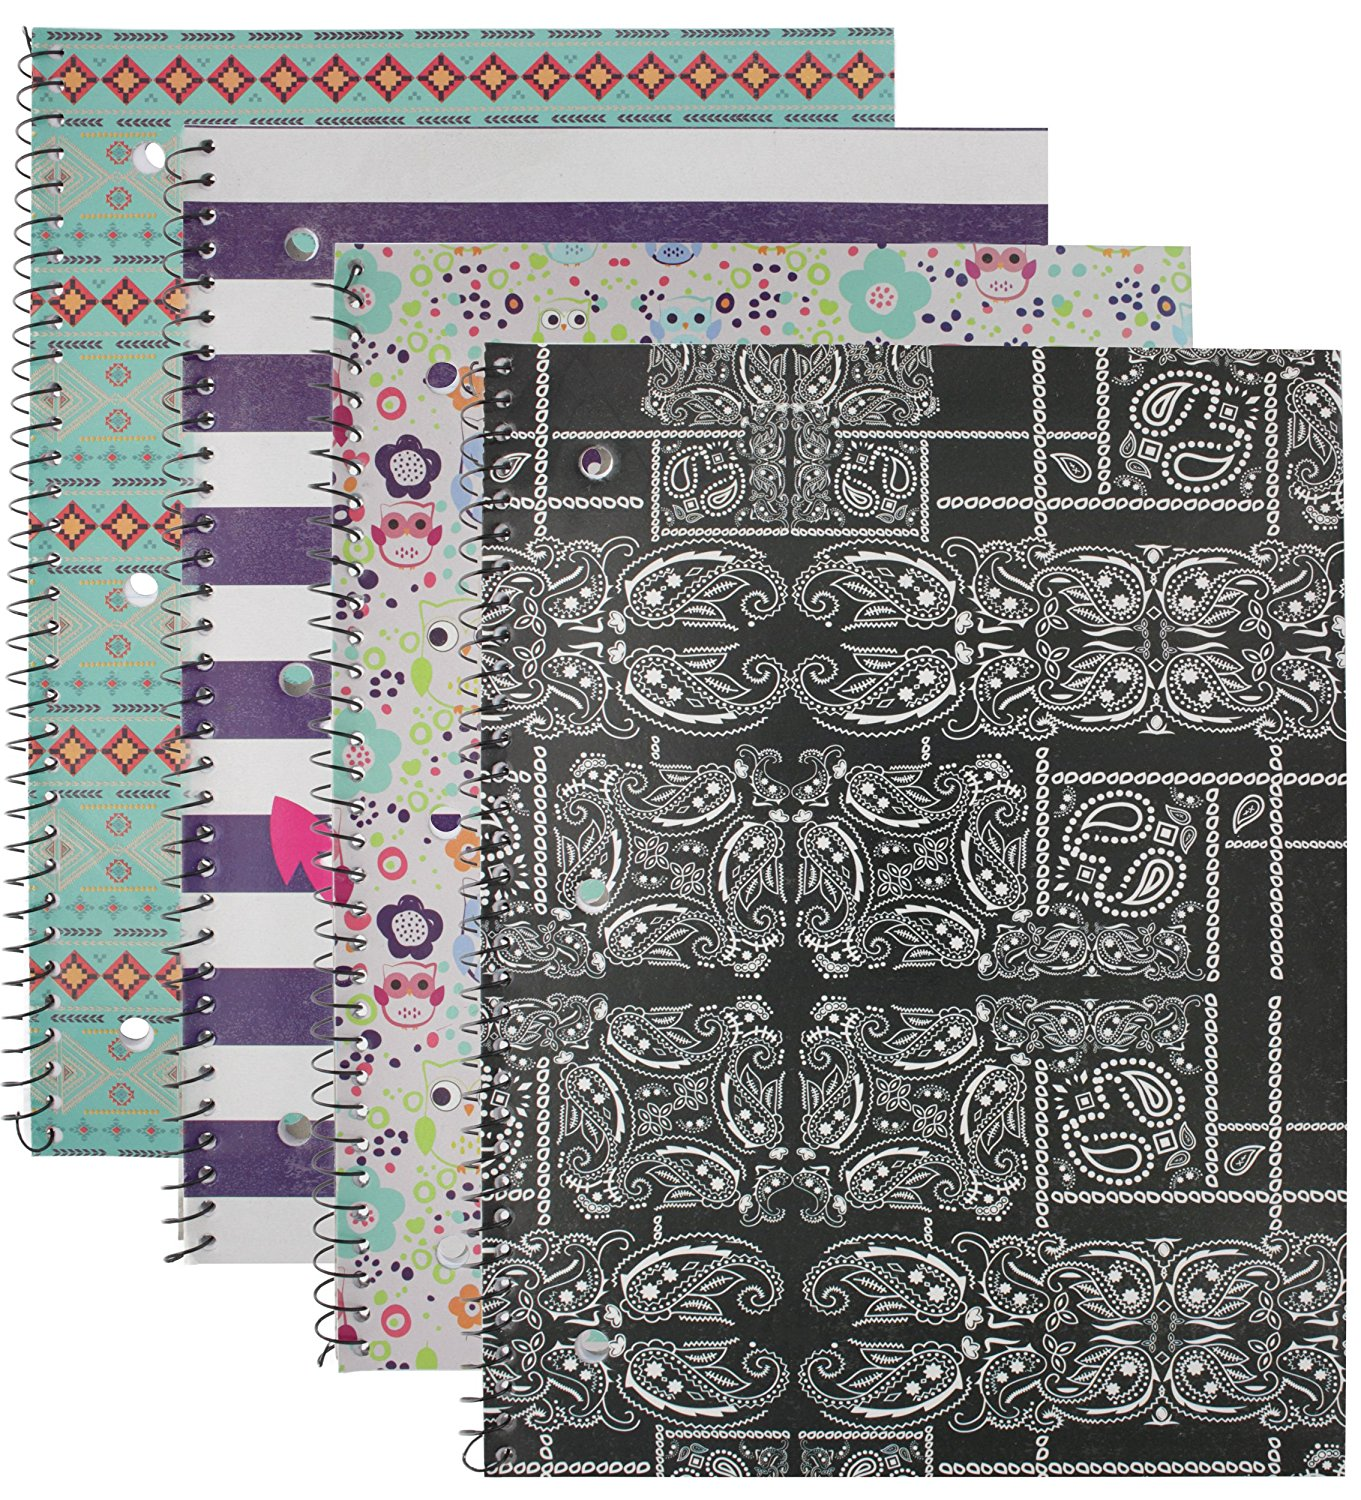 Emraw Trendsetters Notebook Spiral with 60 Sheets of Wide Ruled White Paper - Set Includes: Anchor, Owl, Bandana & Tribal Covers (Random 3 Pack)